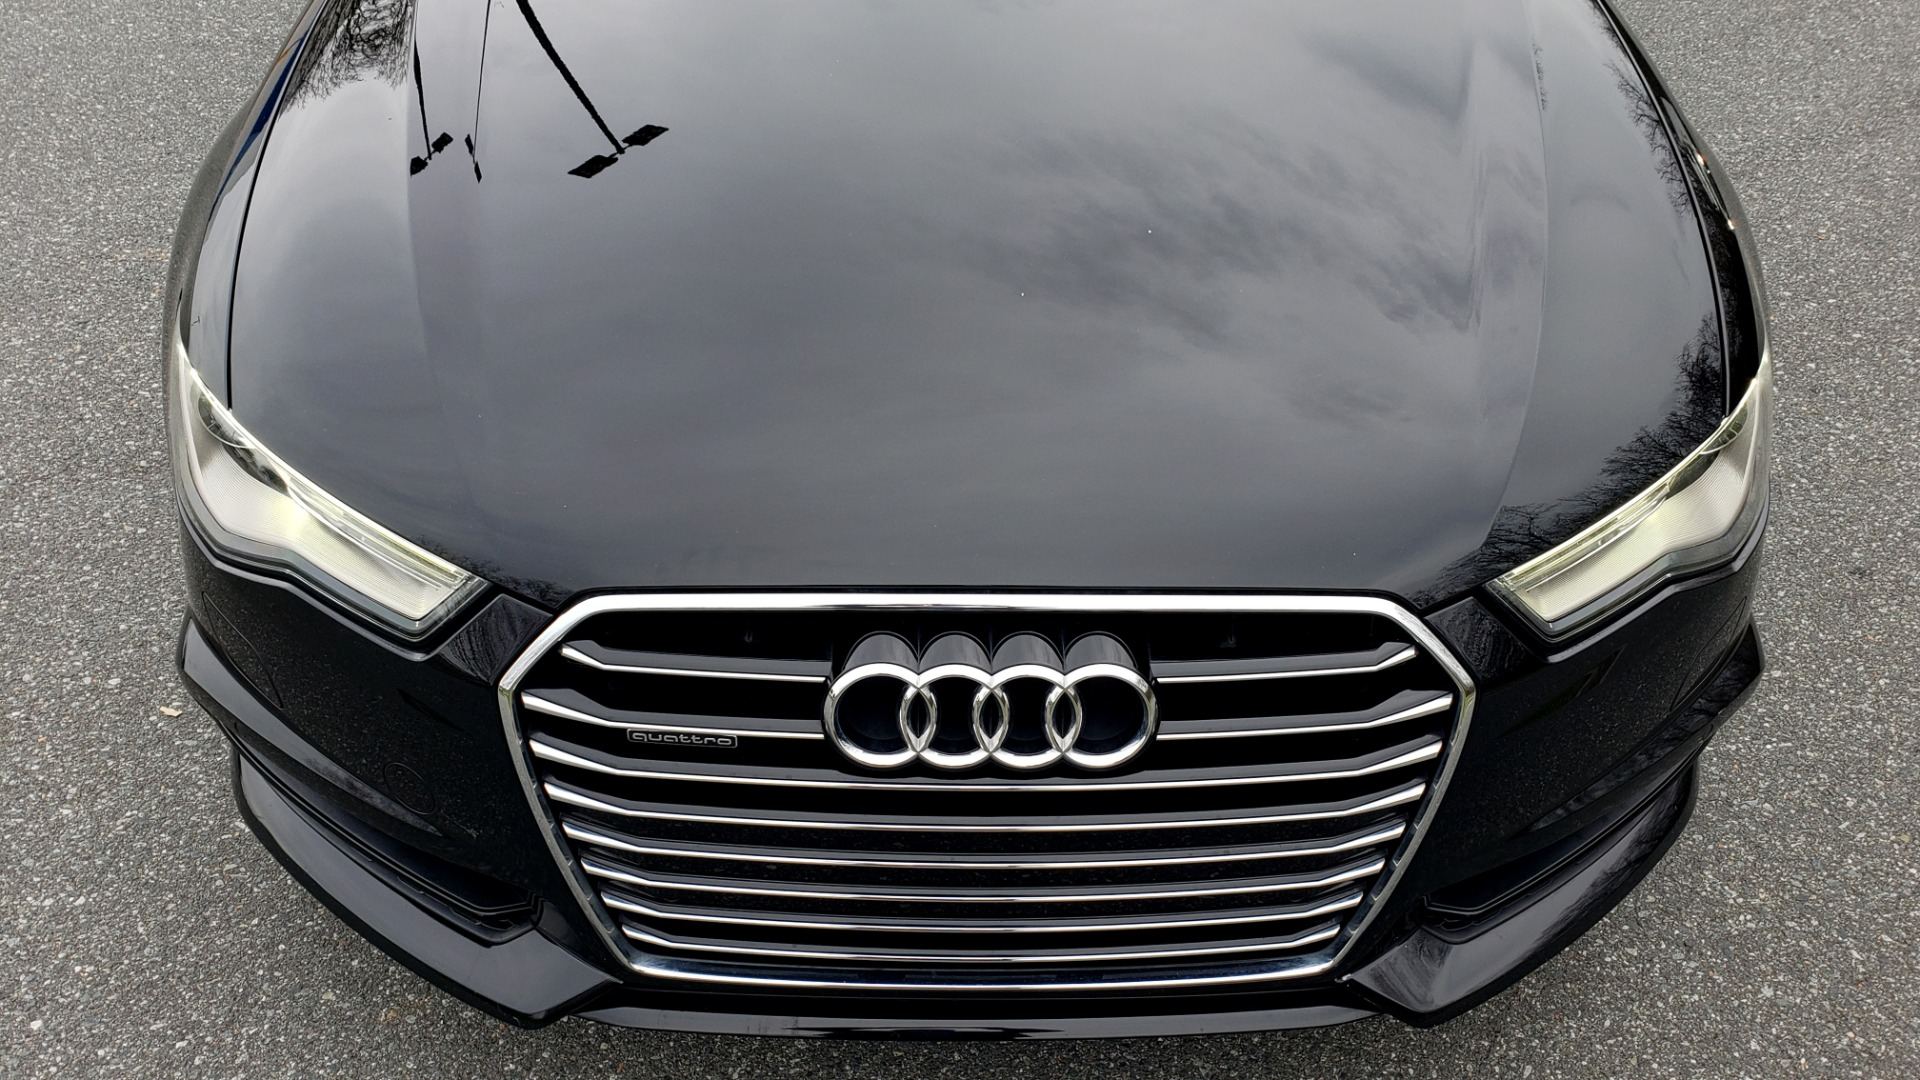 Used 2017 Audi A6 PREMIUM PLUS / NAV / SUNROOF / BOSE / CLD WTHR for sale Sold at Formula Imports in Charlotte NC 28227 14